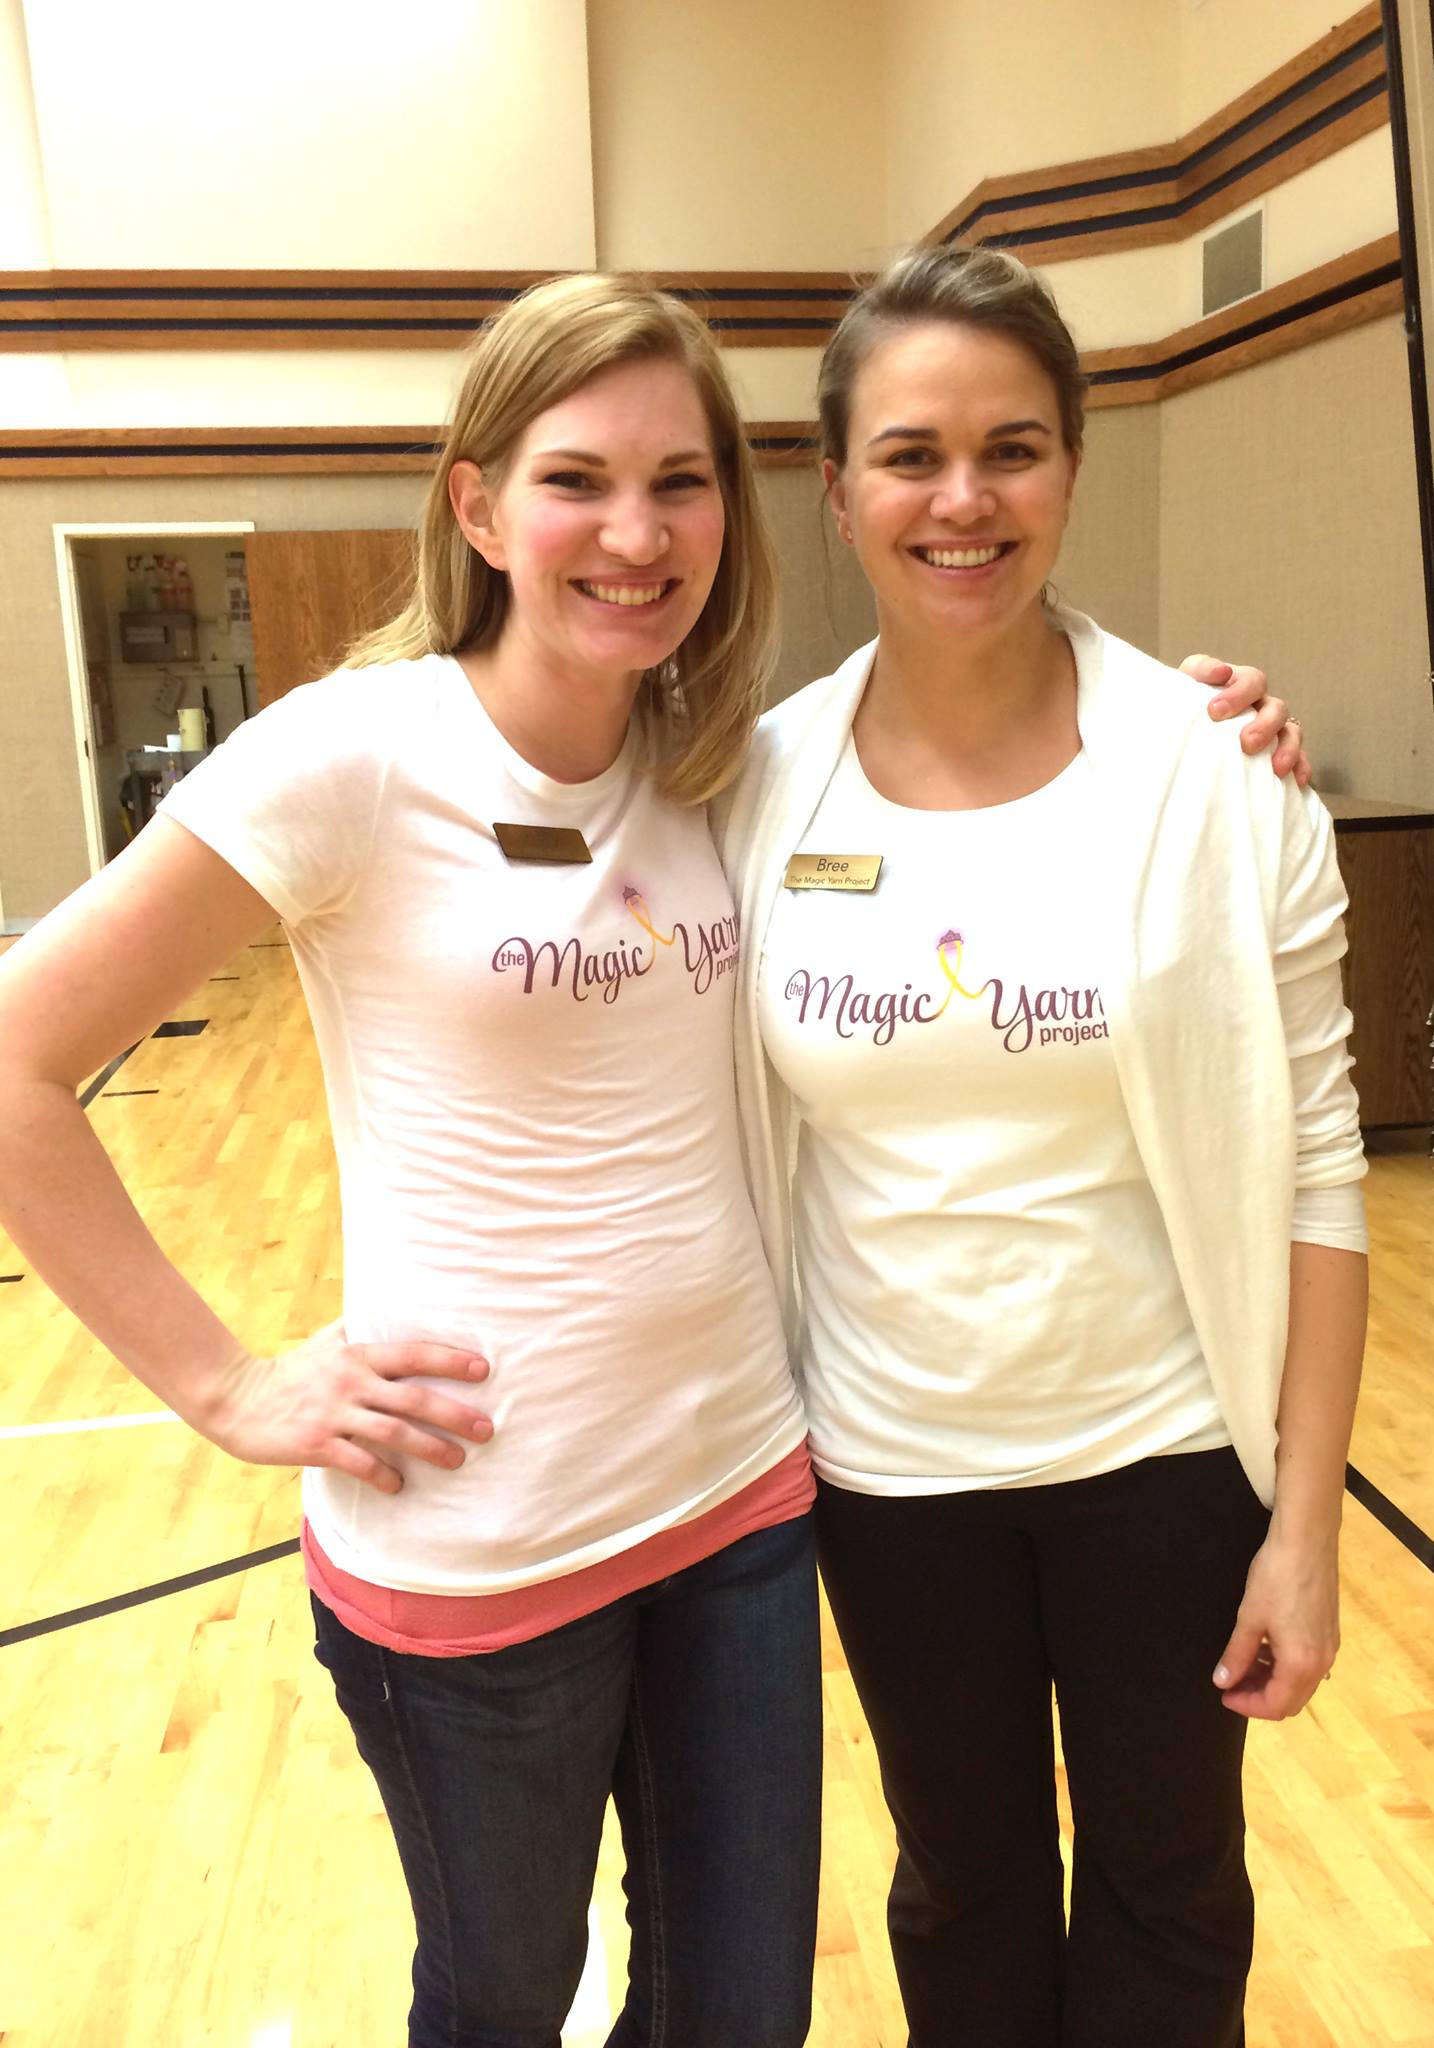 Holly Christensen, Bree Hitchcock. Co-founders, The Magic Yarn Project